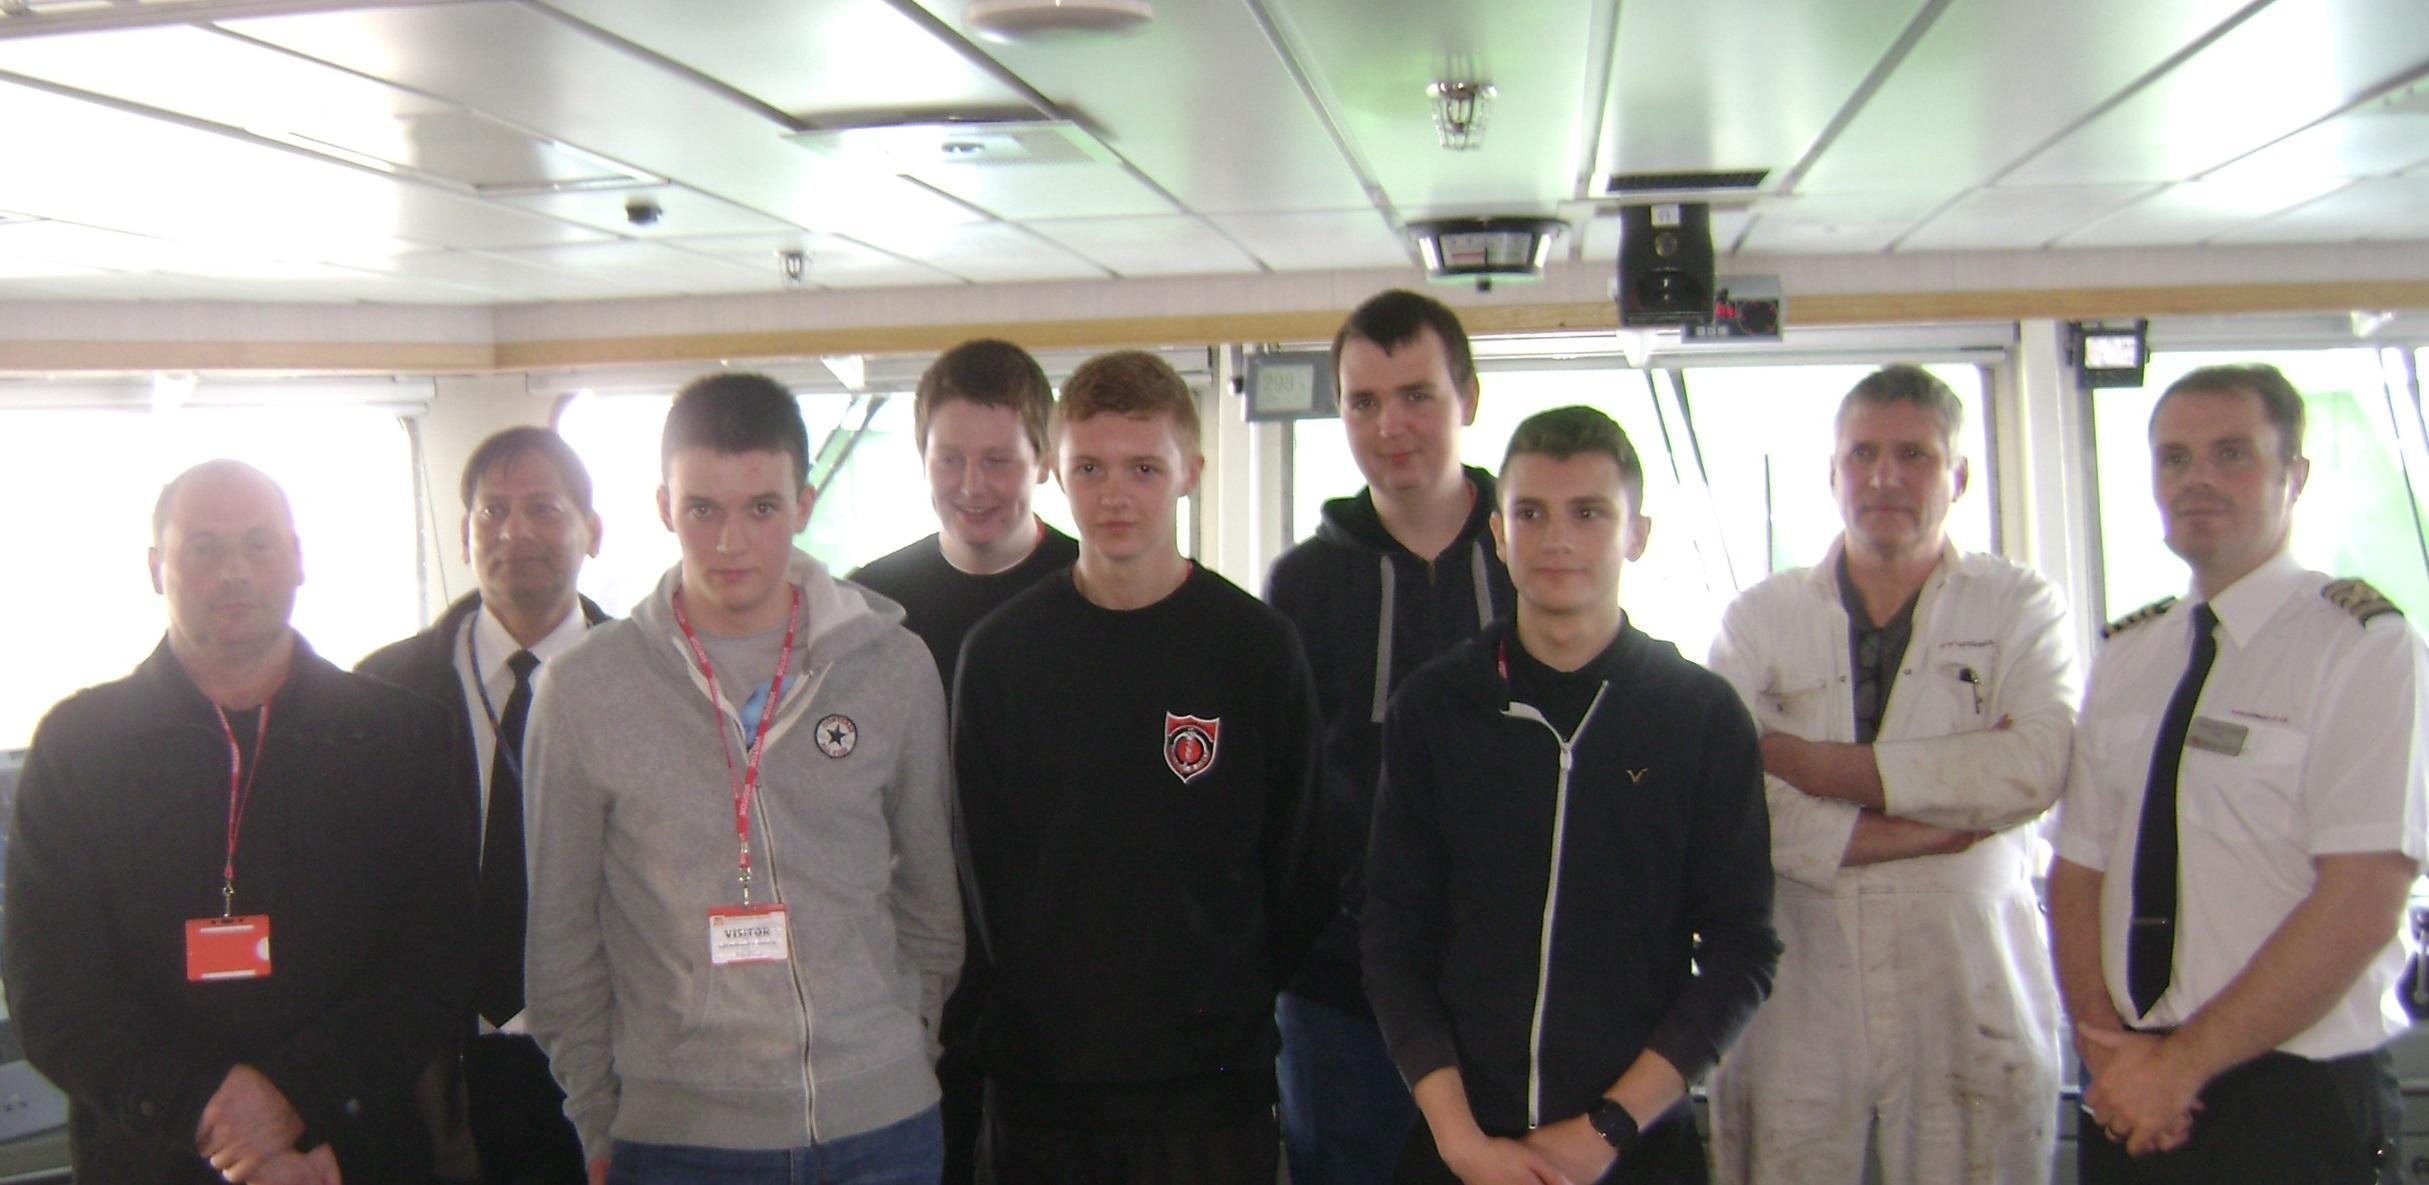 CalMac Officers with pupils at Lionacleit School